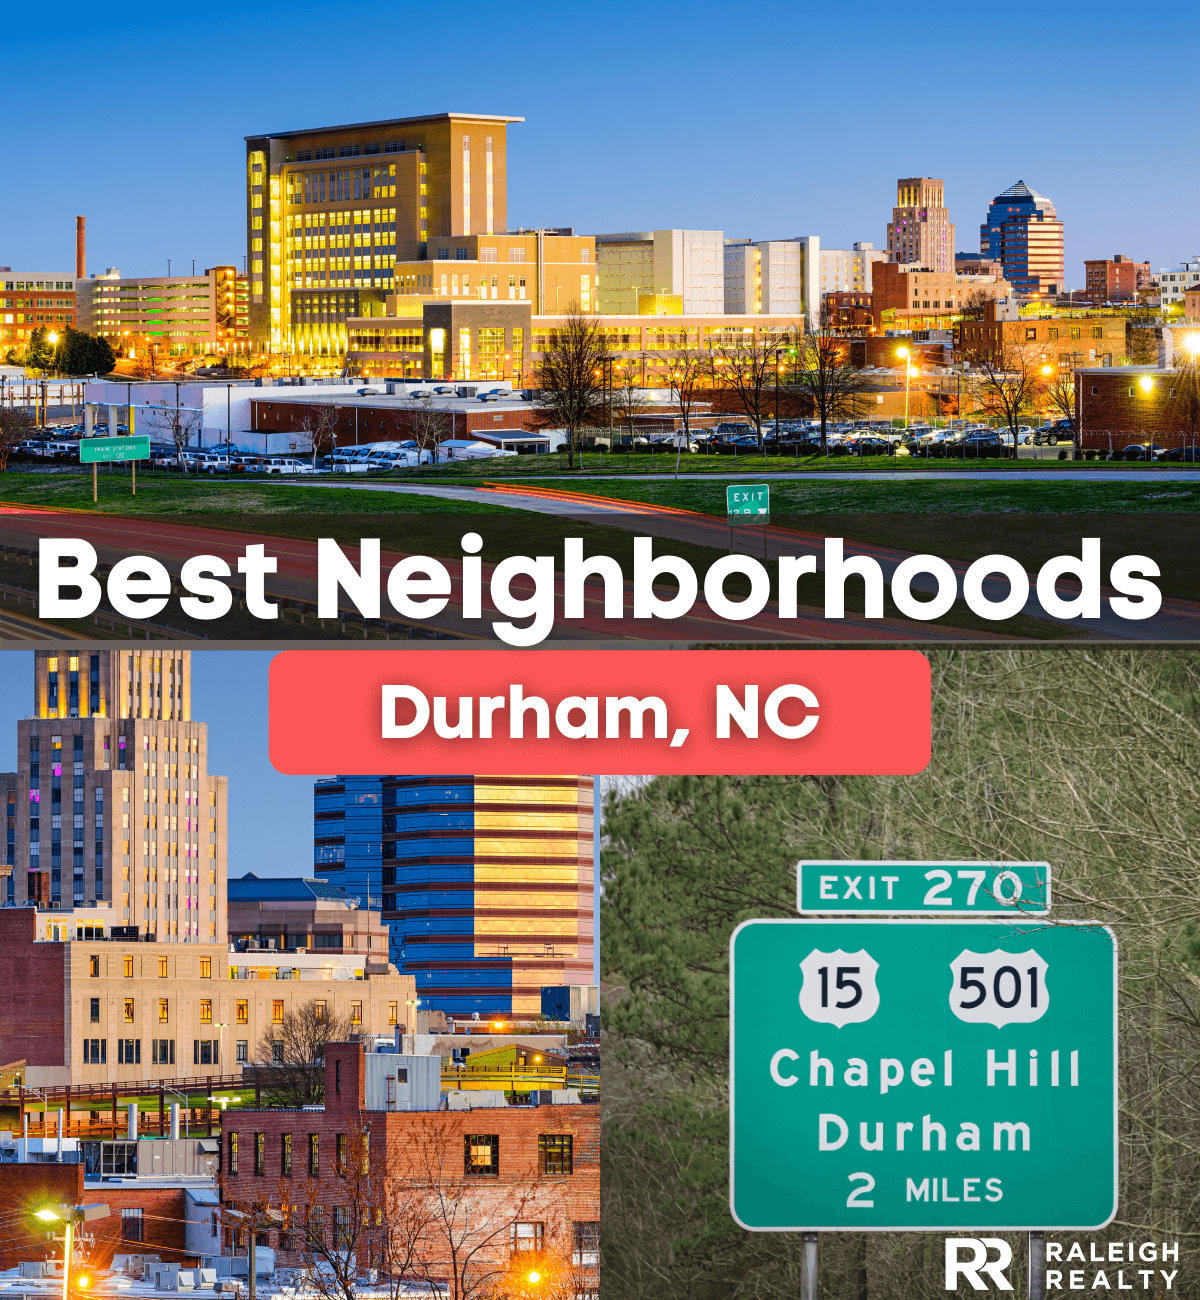 Best neighborhoods in Durham, NC - Best Places to live in Durham, NC!